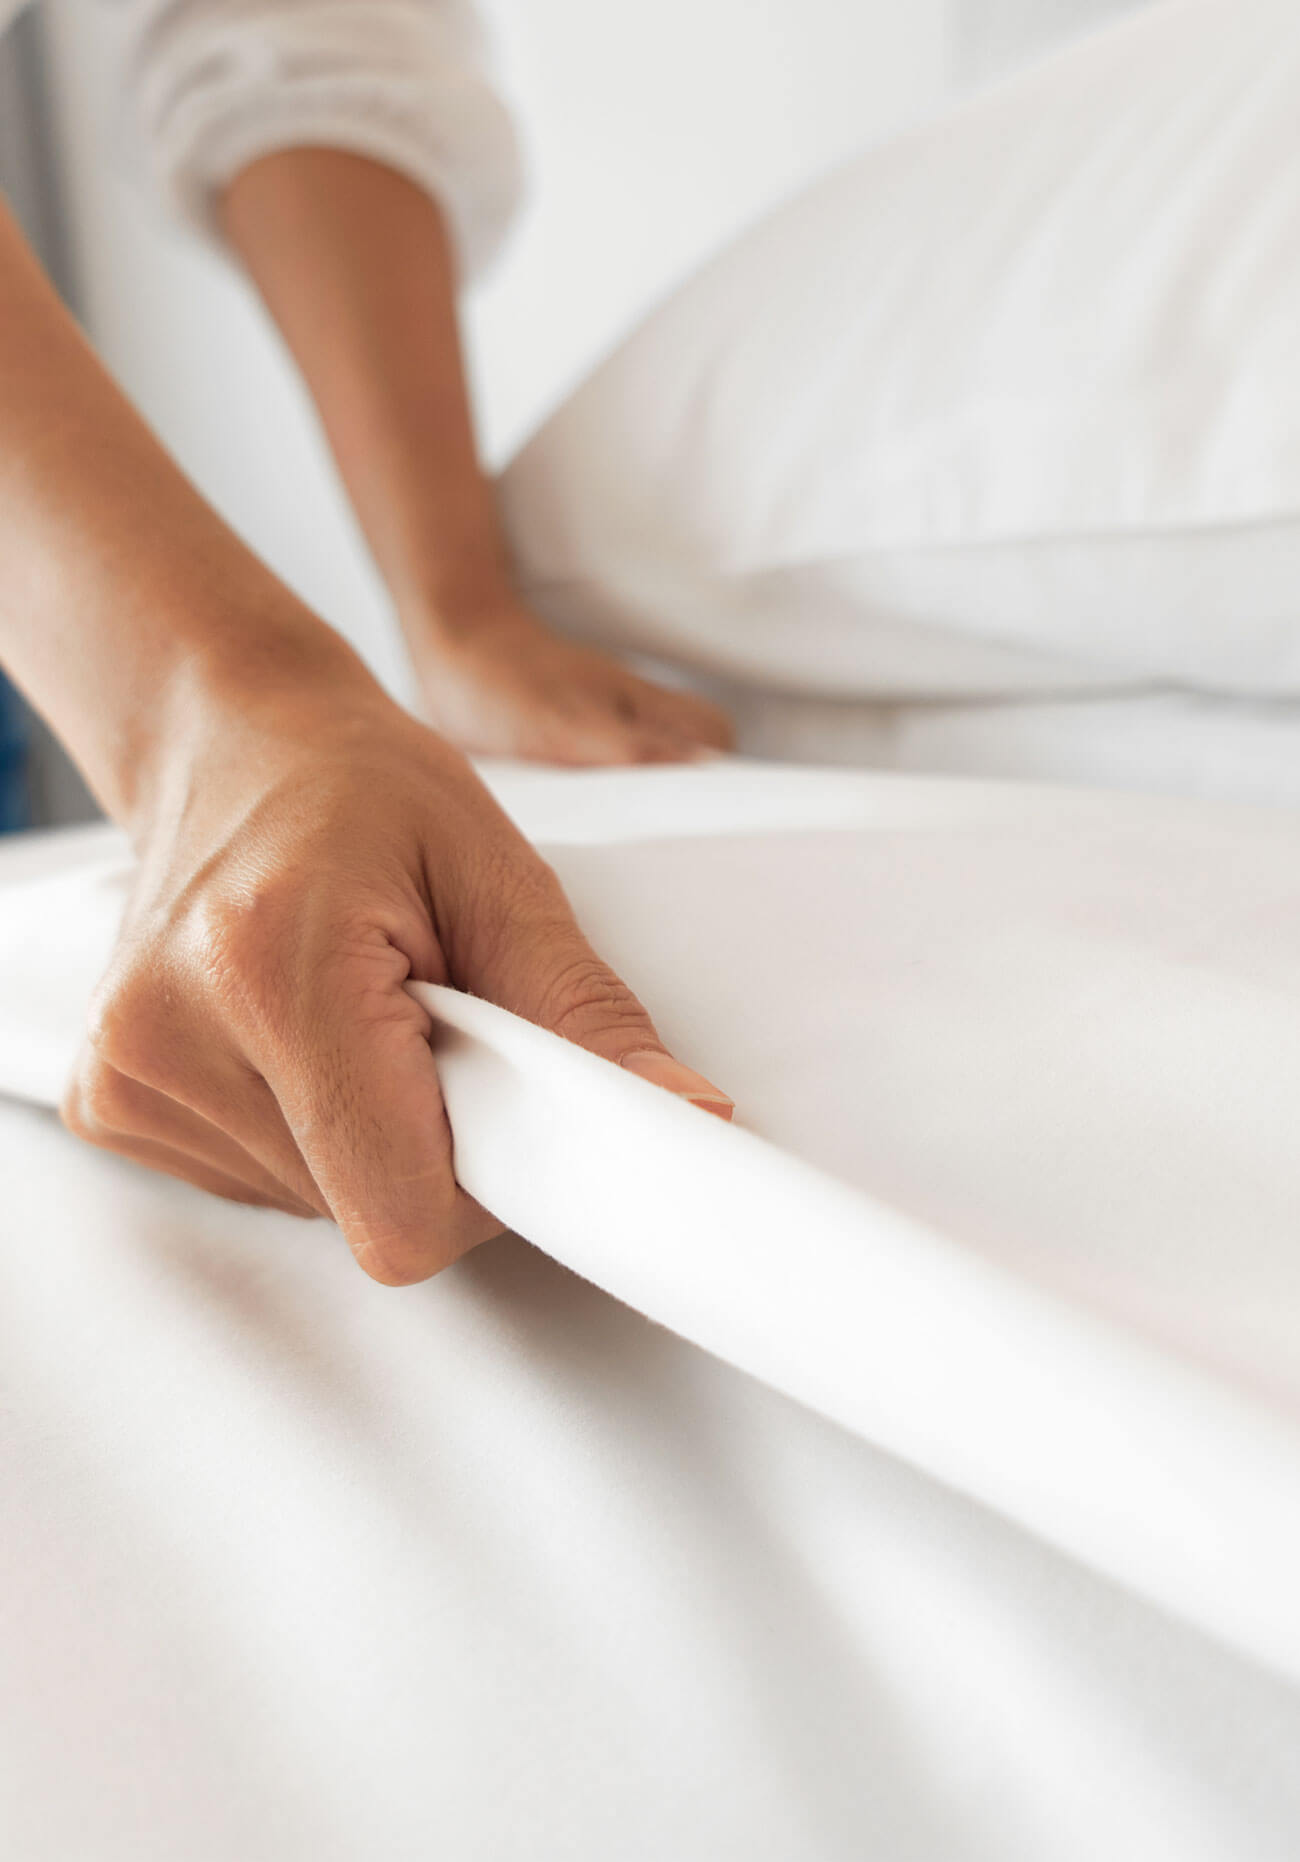 making a bed with cotton sheets